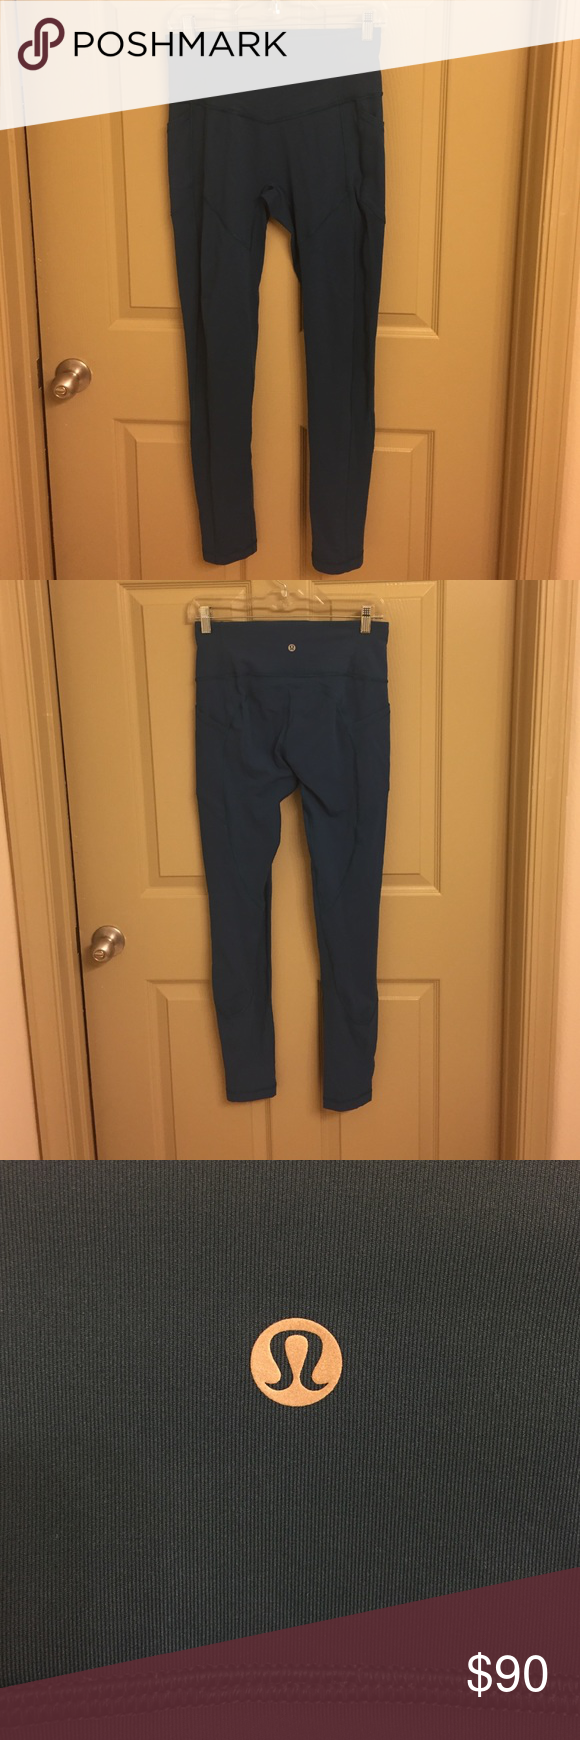 Lululemon all the right places pant Lululemon all the right places pant in teal. Sold out online worn only twice. Reflective detail when you cuff the pant leg as well as side pockets lululemon athletica Pants Leggings